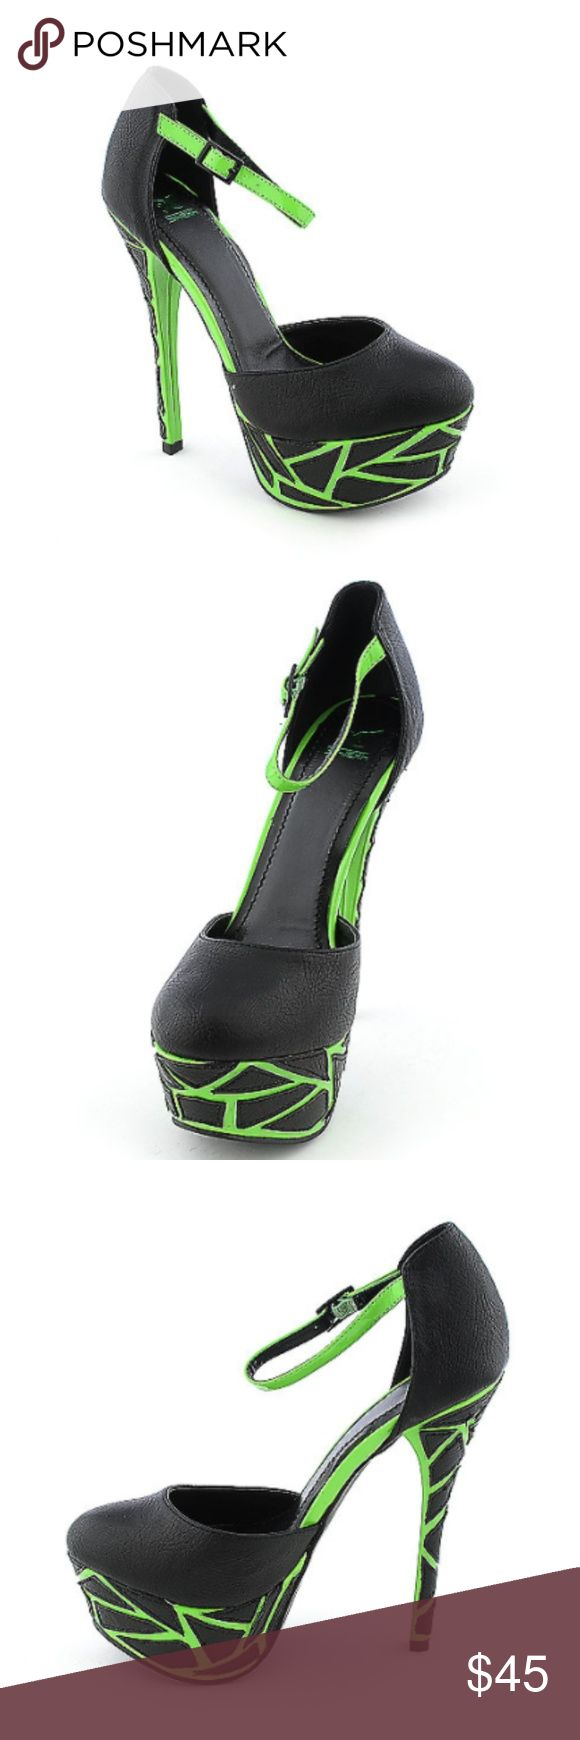 COMING SOON ! black & neon pumps ! PUT IN BUNDLE & ILL SENT YOU AN OFFER WHEN THEYRE HERE !  Take your style to new heights with these high heel platform dress shoes  these black and neon green pairs well with a bold dress. Vegan leather/patent Thin adjustable ankle strap Crackle pattern platform style Patent heel/platform/ankle strap Lightly-cushioned insole Rubber outsole Heel height: 5 ½ in. Platform height: 1 ¾ in. Shoes Heels